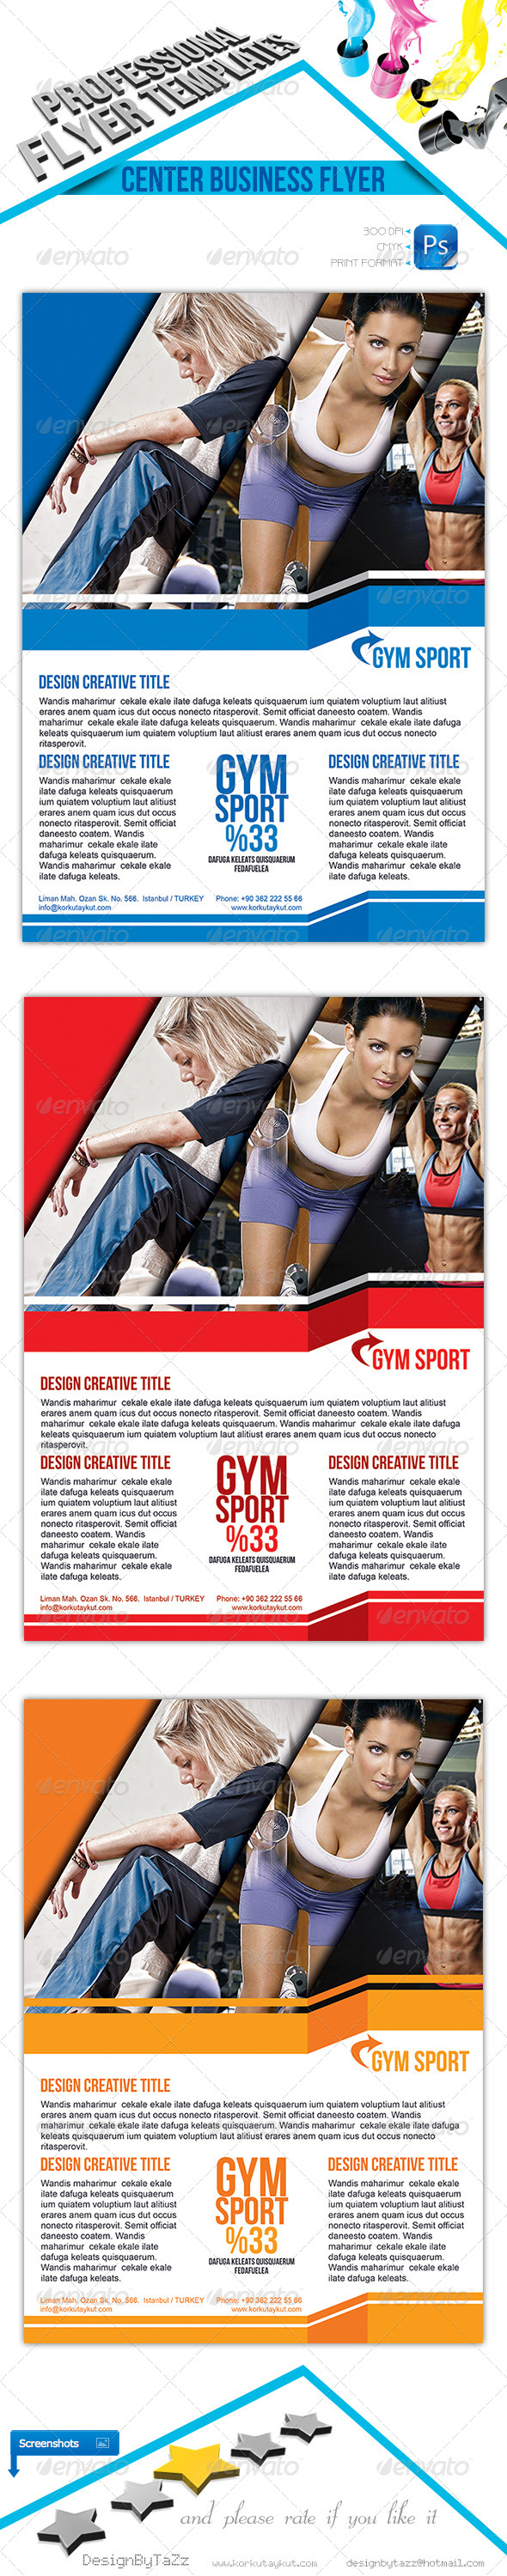 Center Business Flyer Template - Sports Events